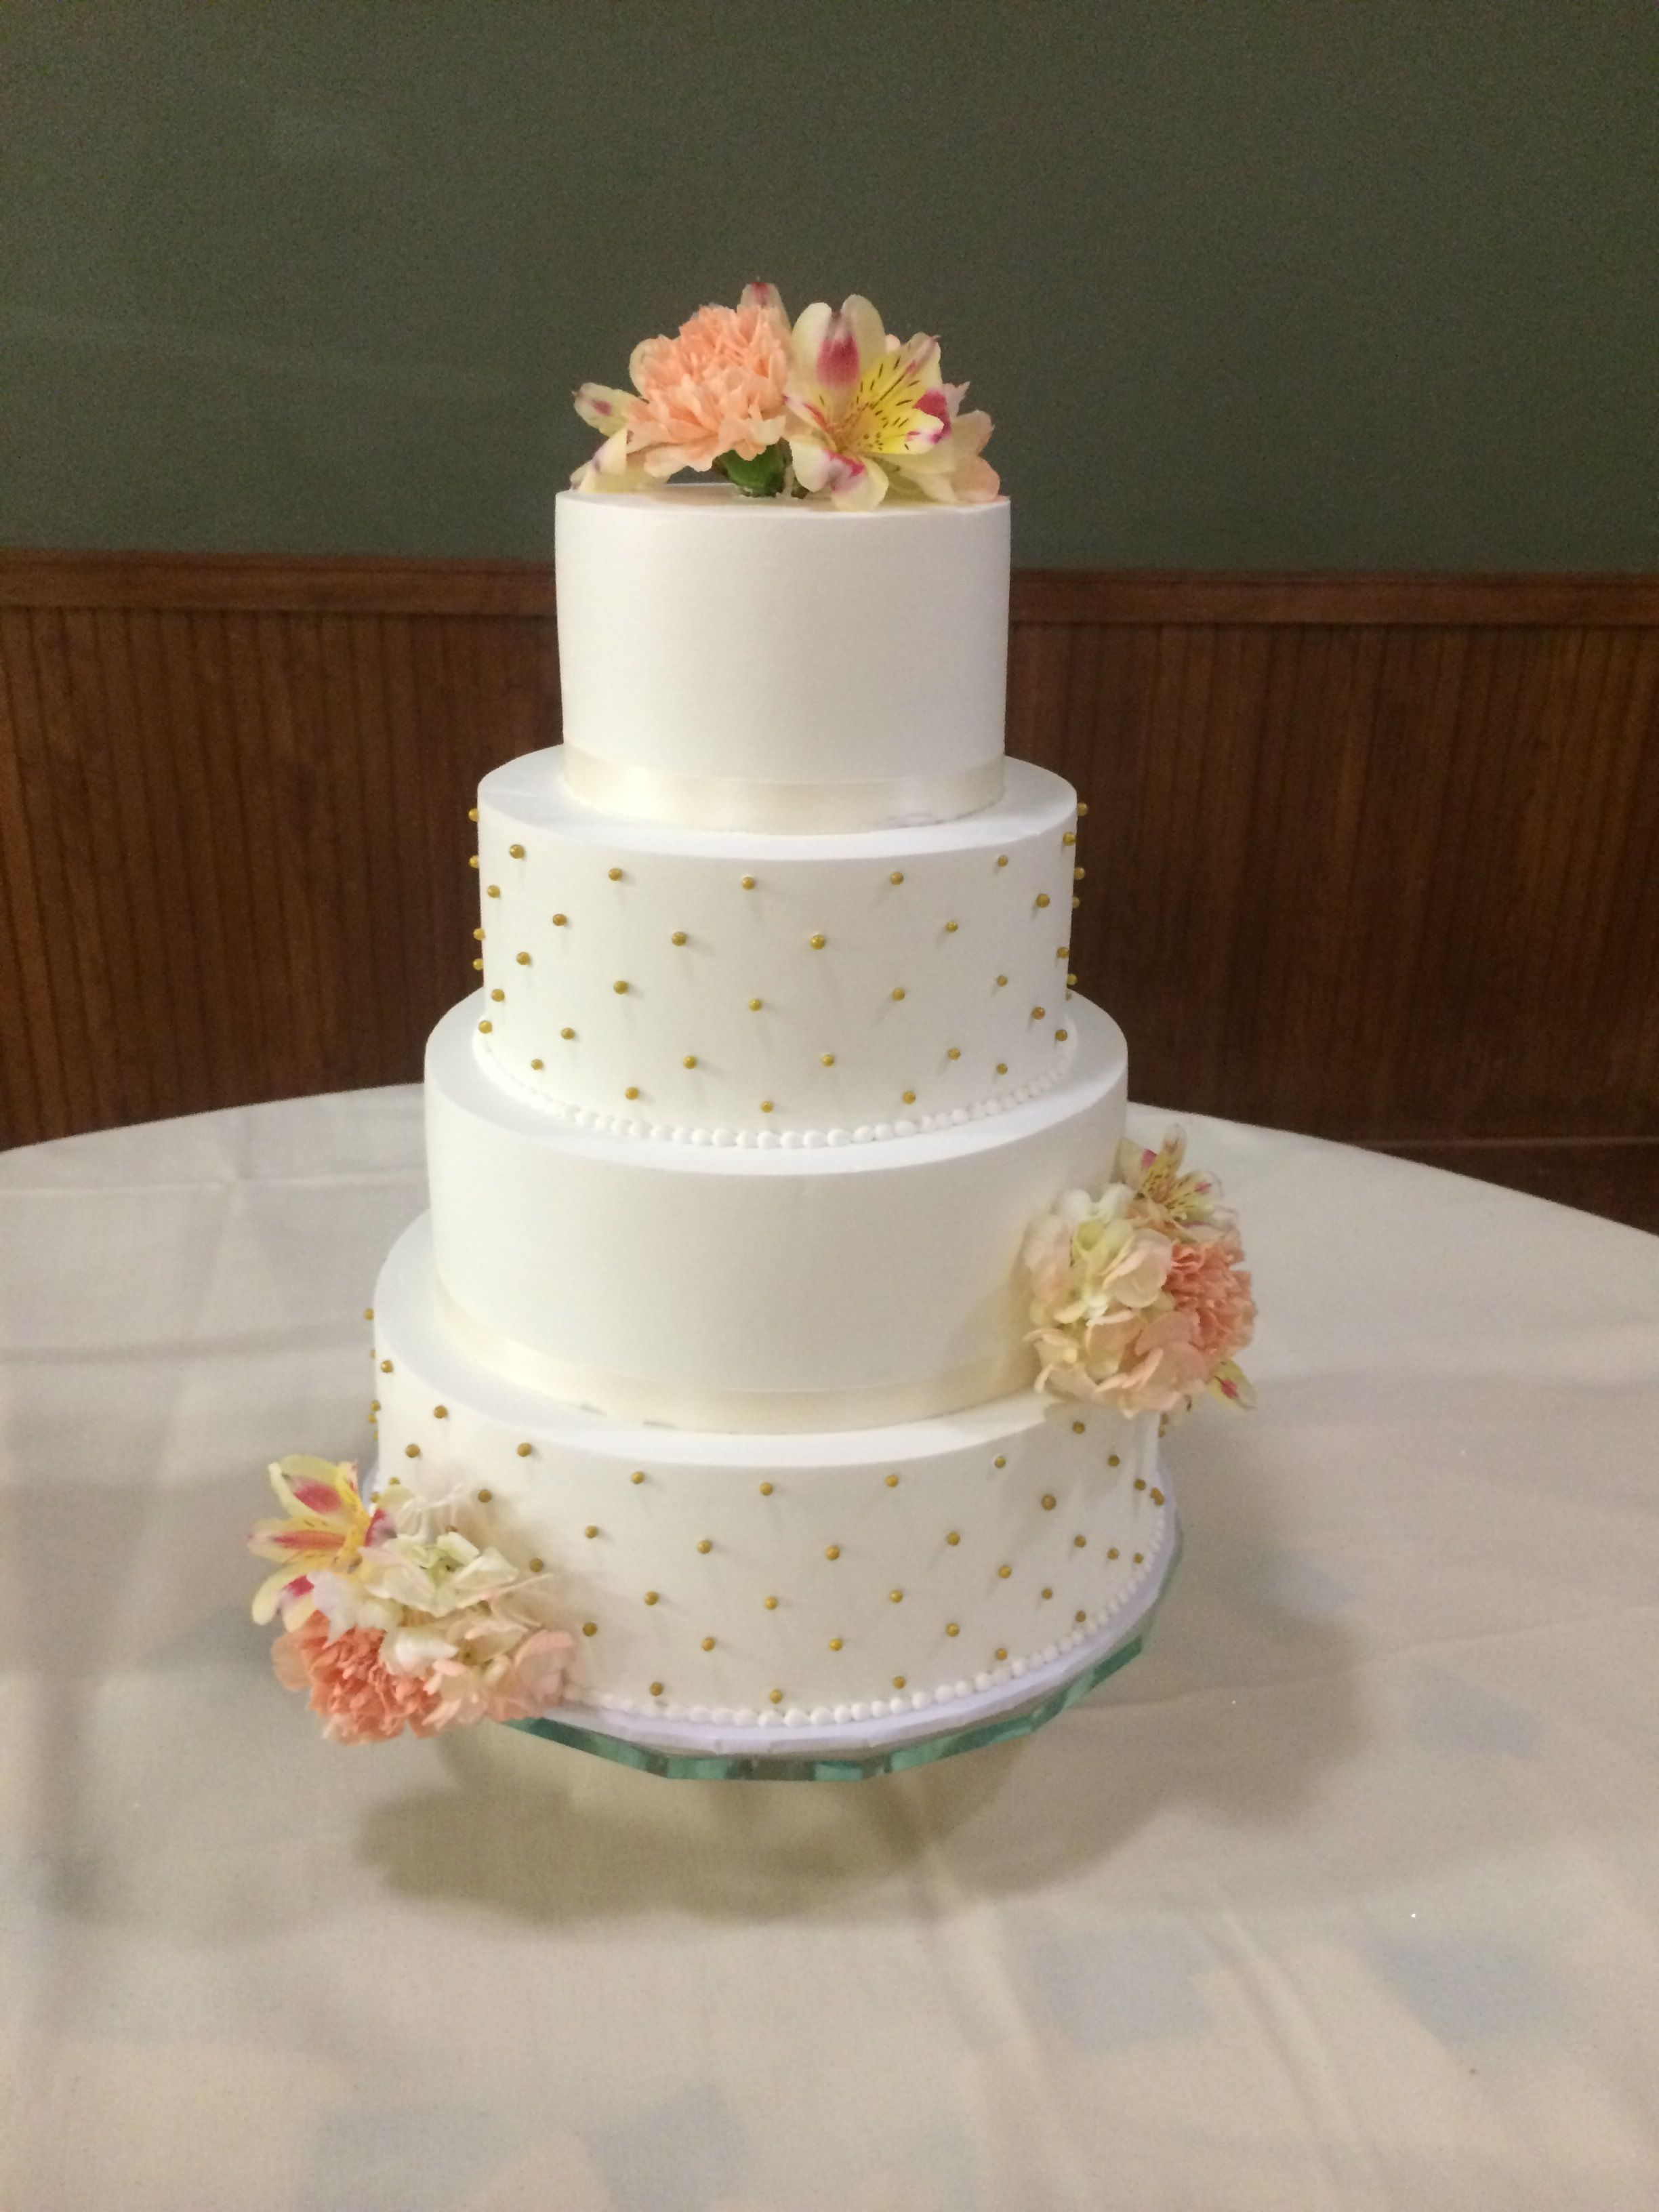 White 4 Tier Wedding Cake With Orange And Pink Flowers